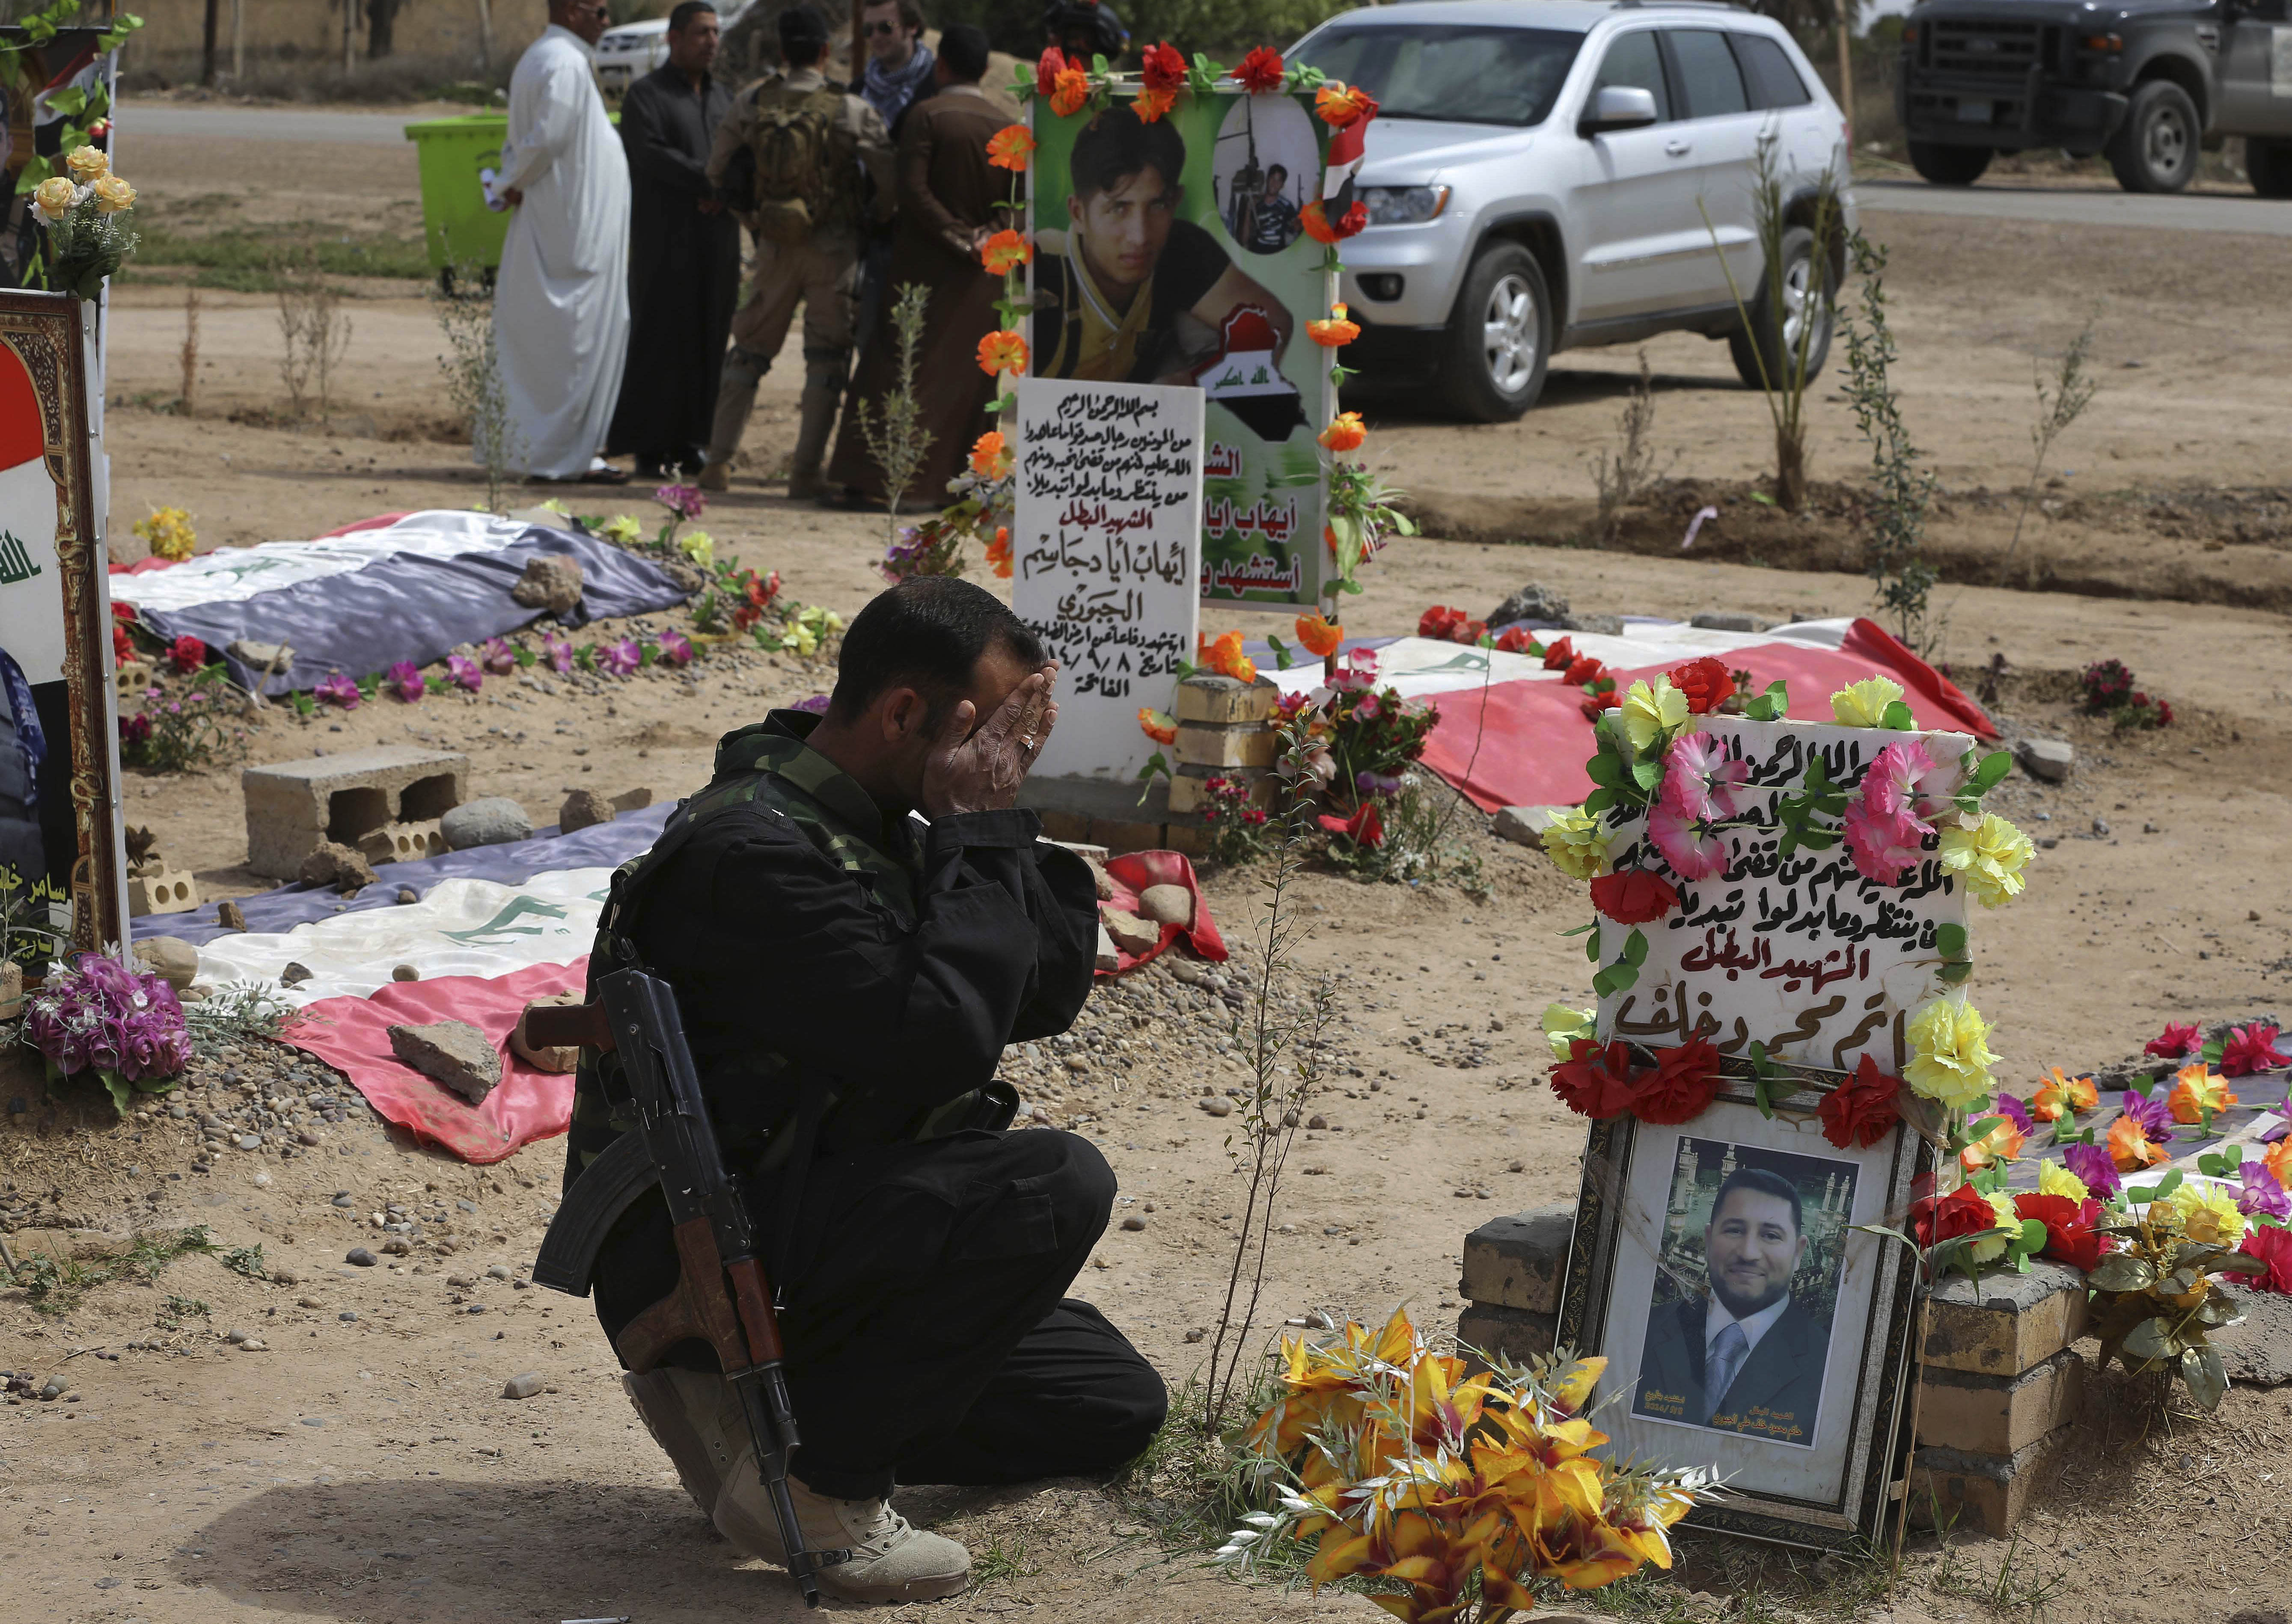 Iraqi Sunni tribe wages costly battle against IS group